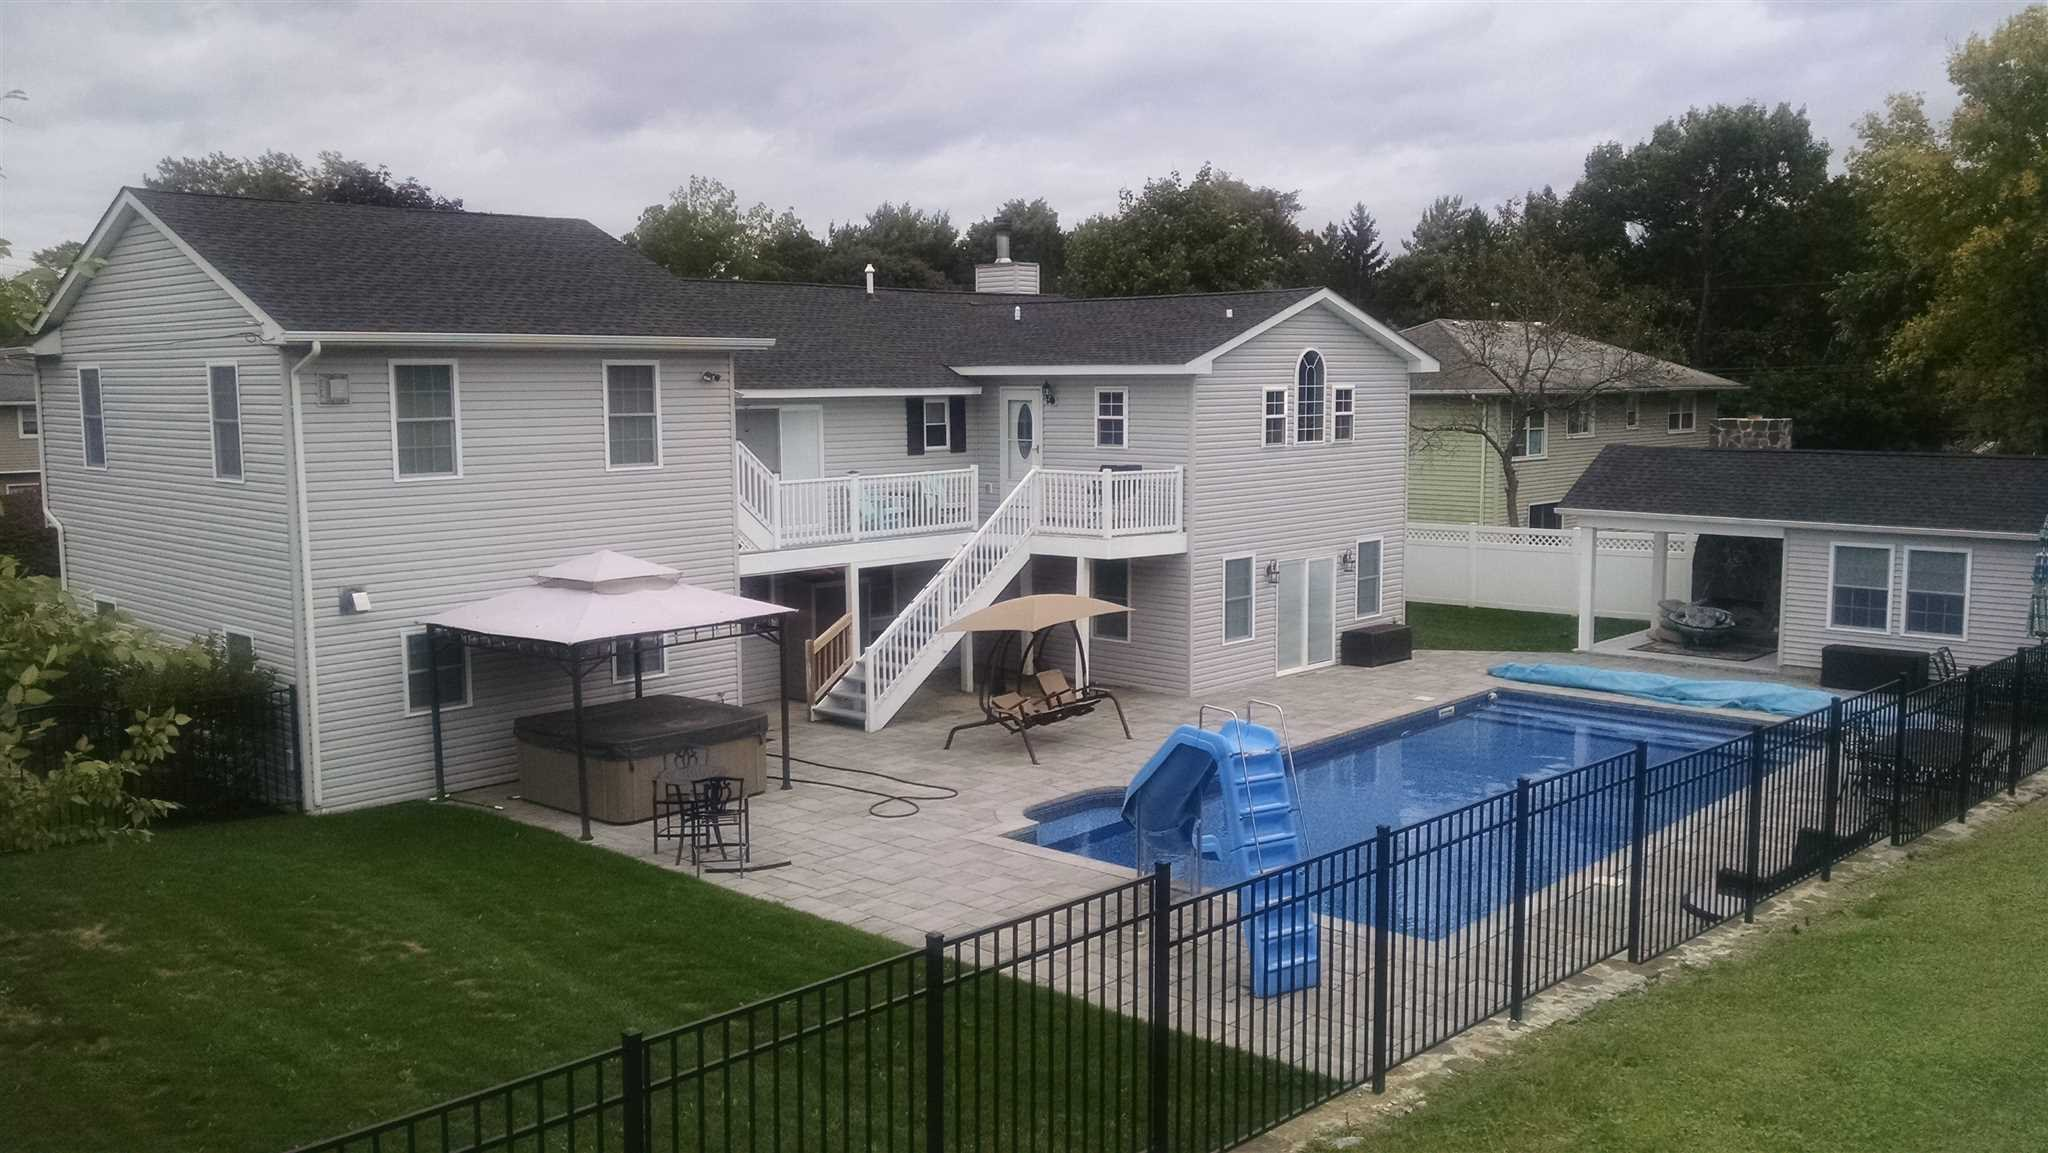 Single Family Home for Sale at 7 JAY ROAD 7 JAY ROAD Poughkeepsie, New York 12603 United States